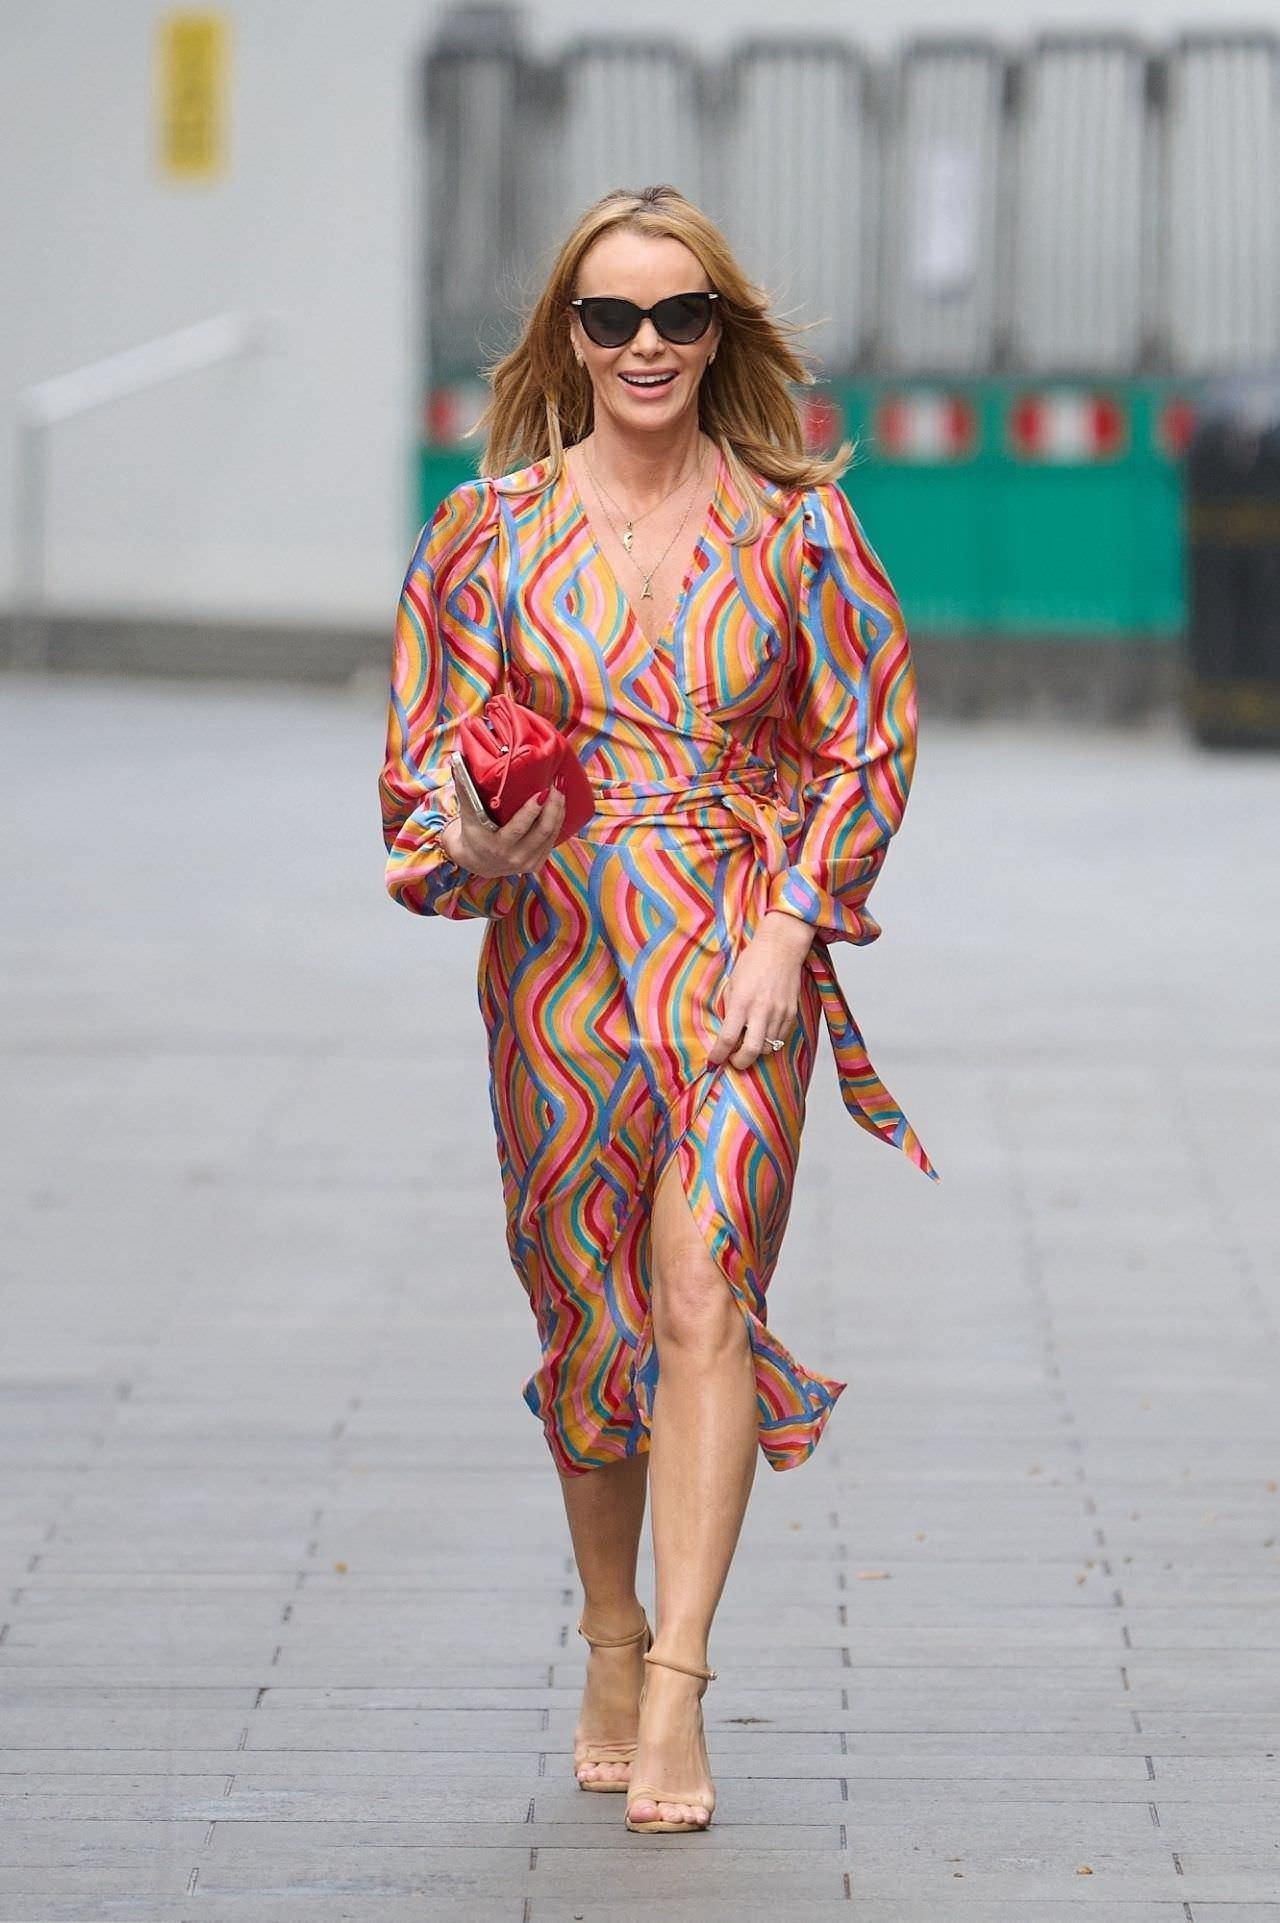 Amanda Holden Out in London in Colorful Dress